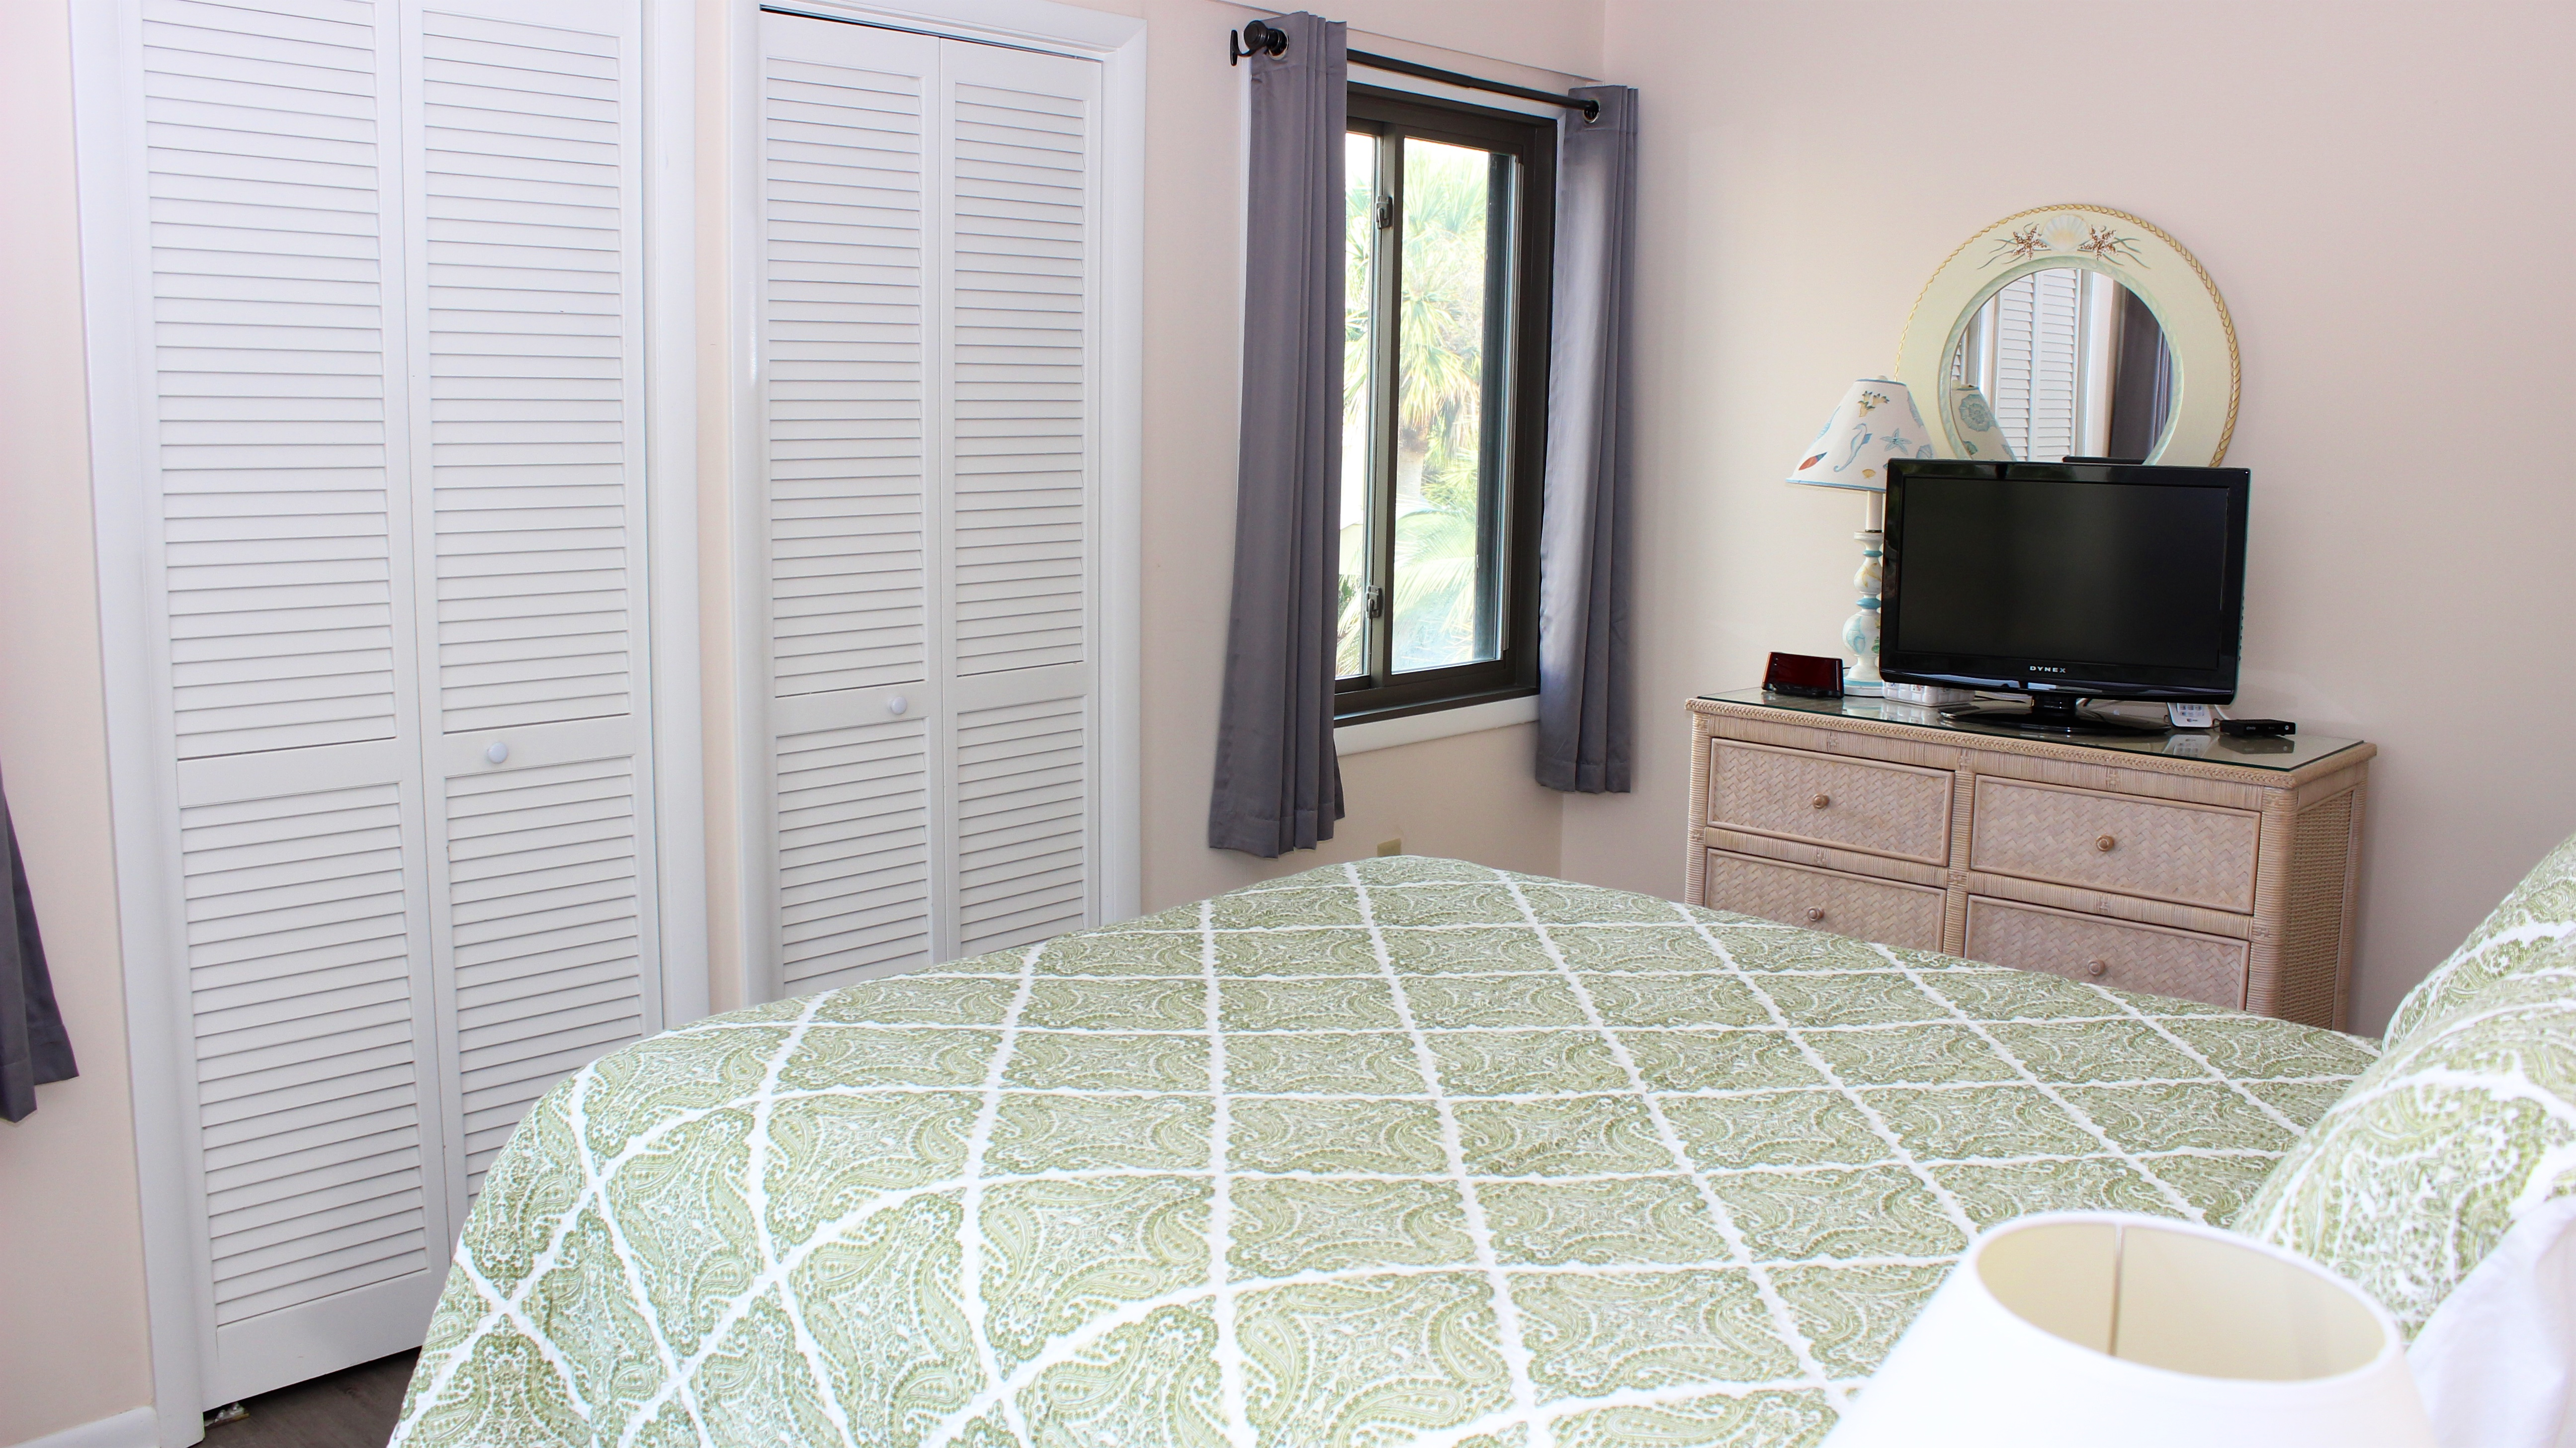 The master bedroom has a queen bed and flat screen TV.